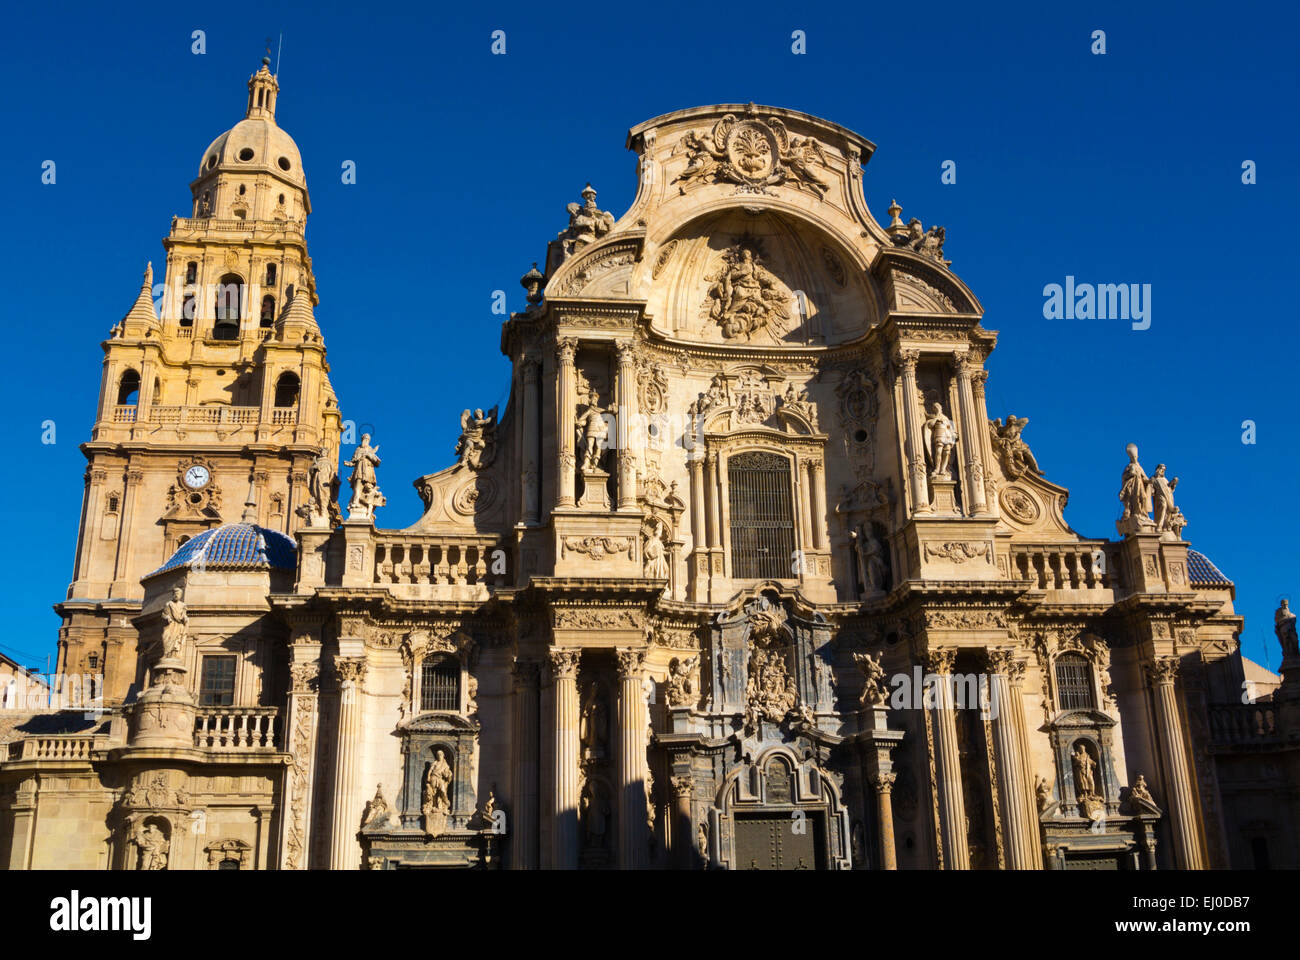 Catedral, the Cathedral church, Plaza del Cardenal Belluga square, old town, Murcia, Spain - Stock Image